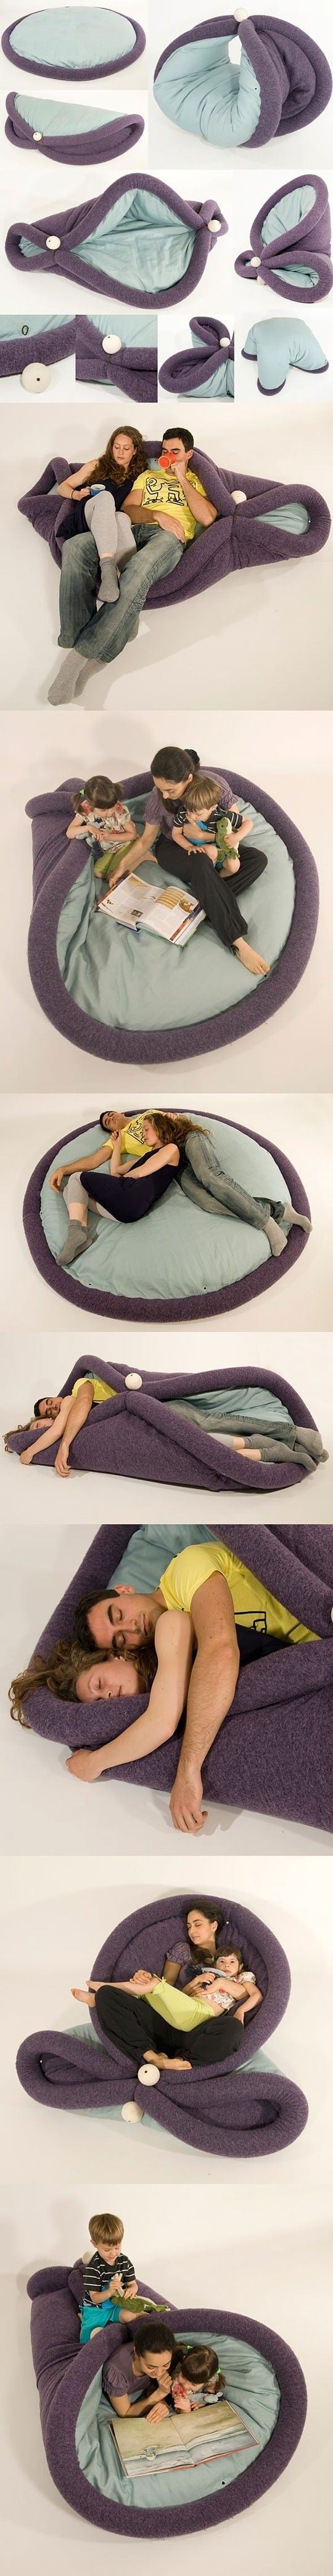 I want one! # Pin++ for Pinterest #